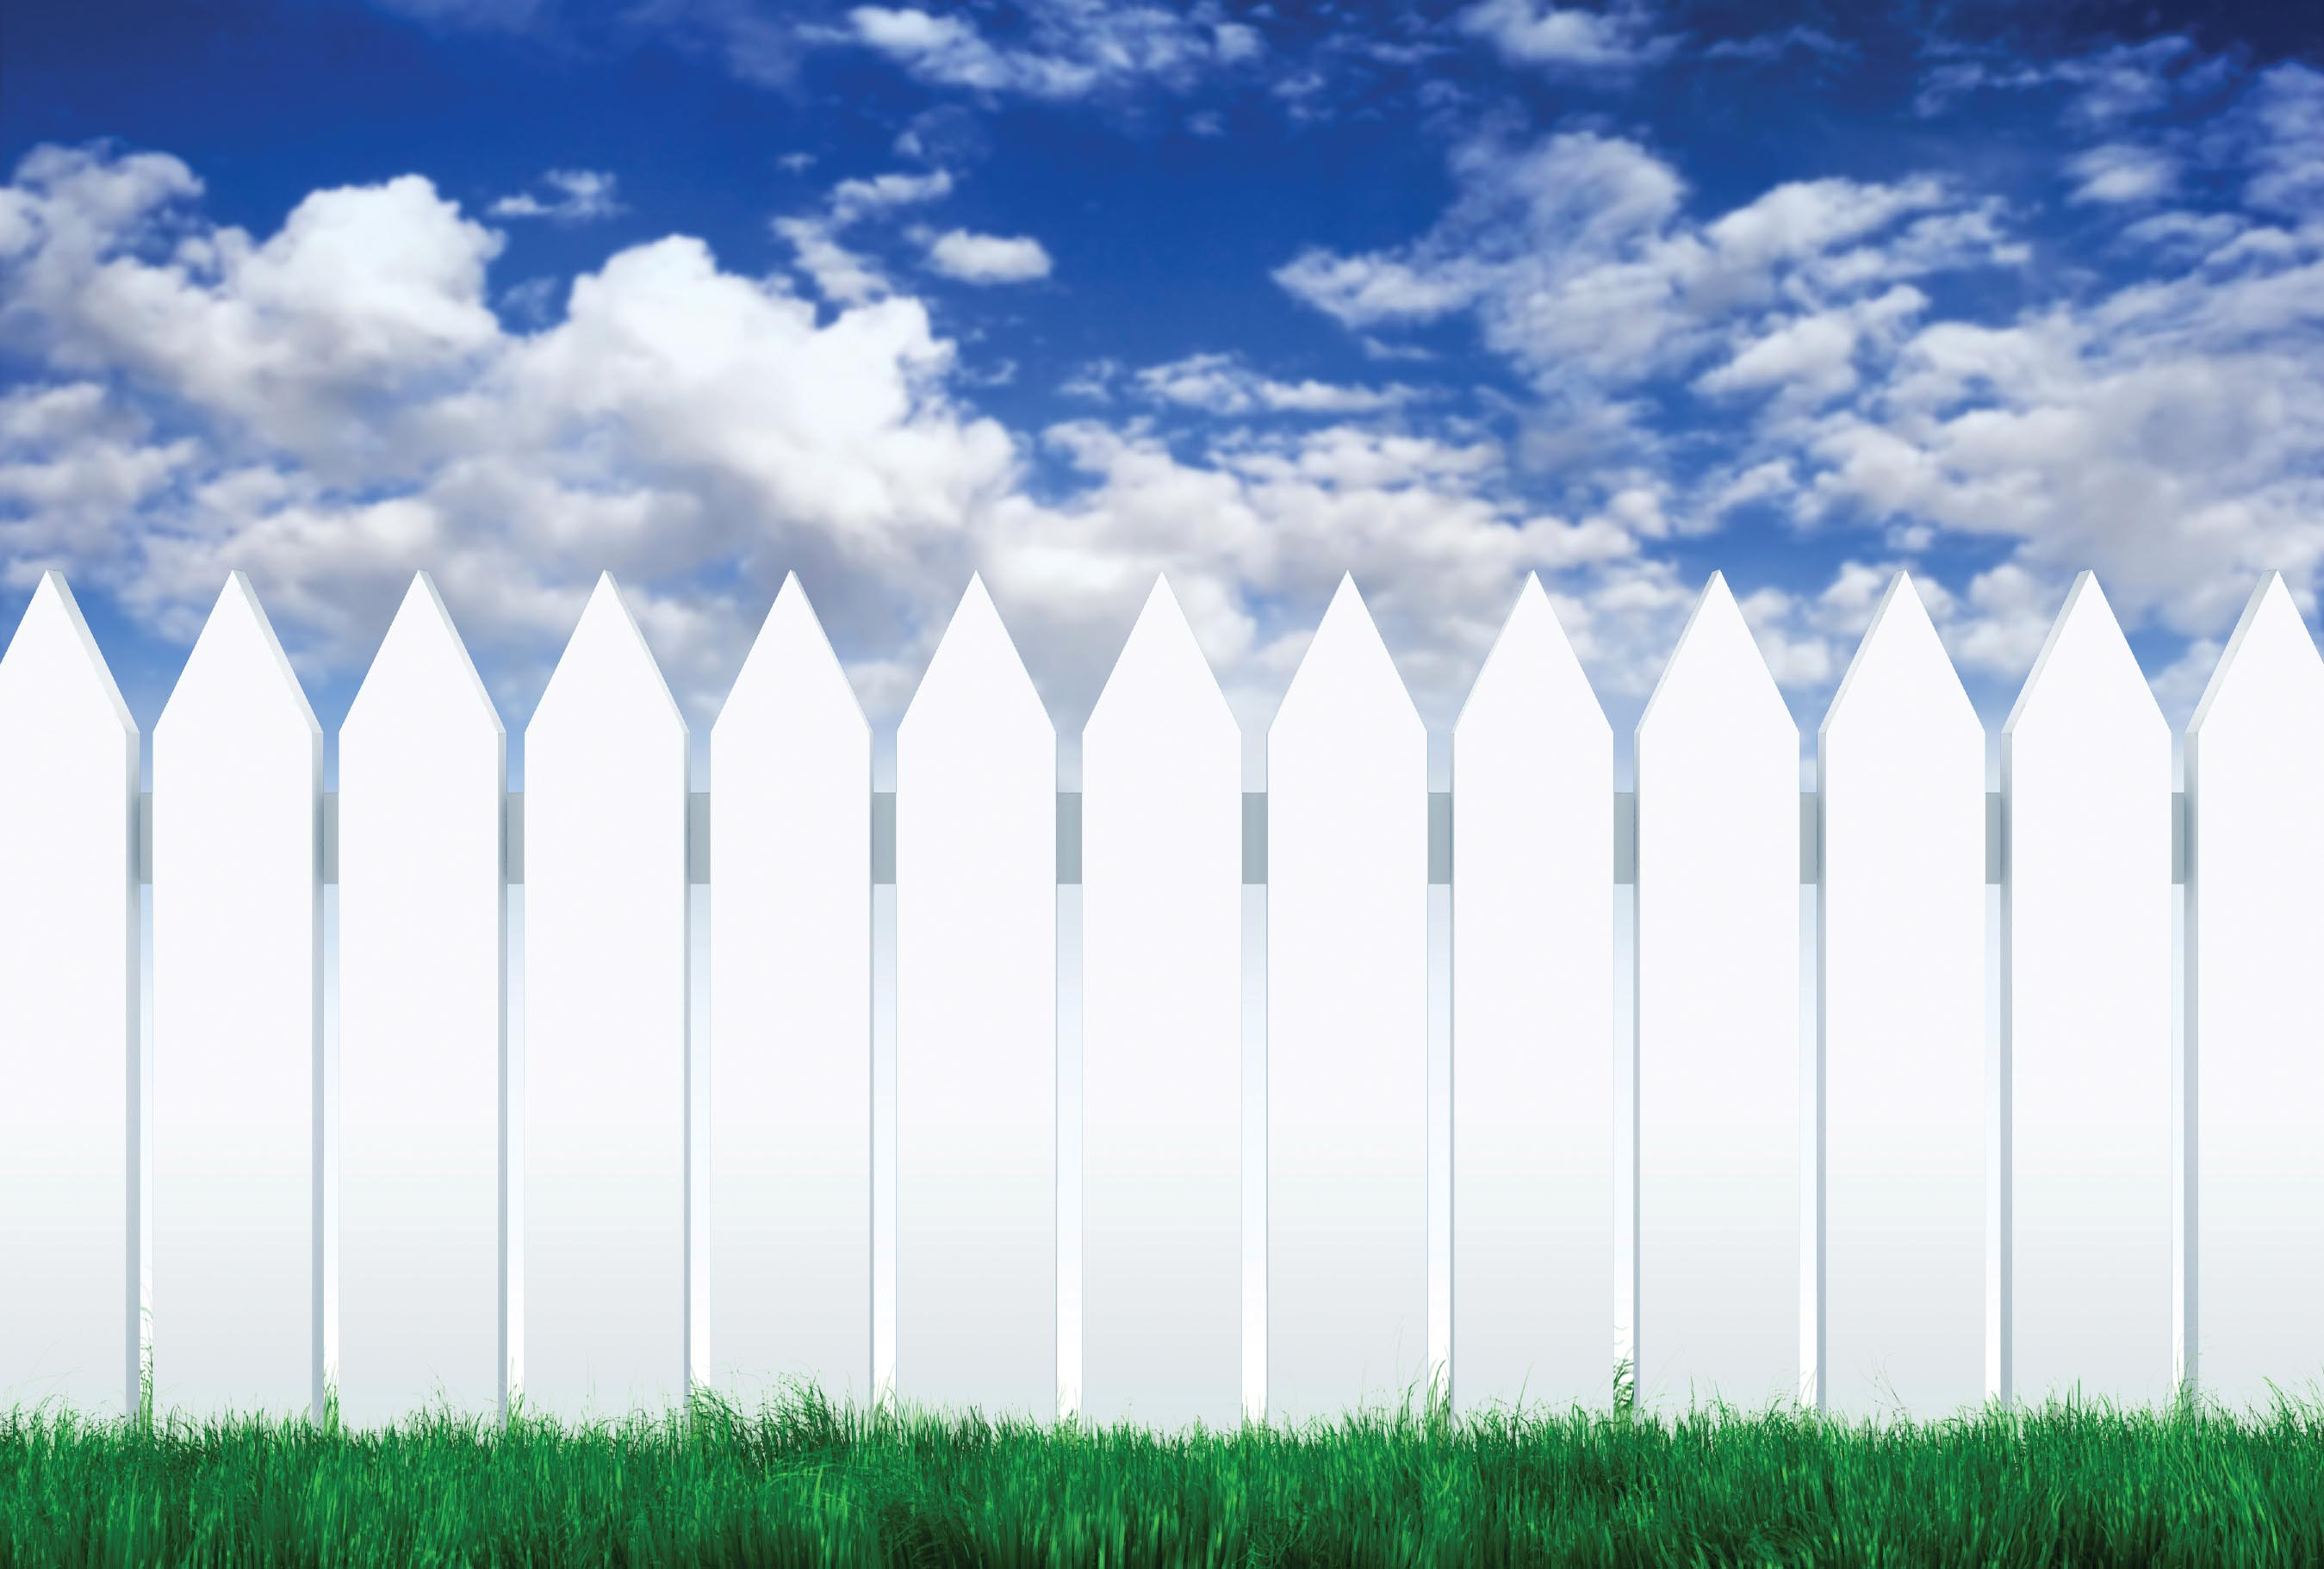 White Picket Fence Wallpaper